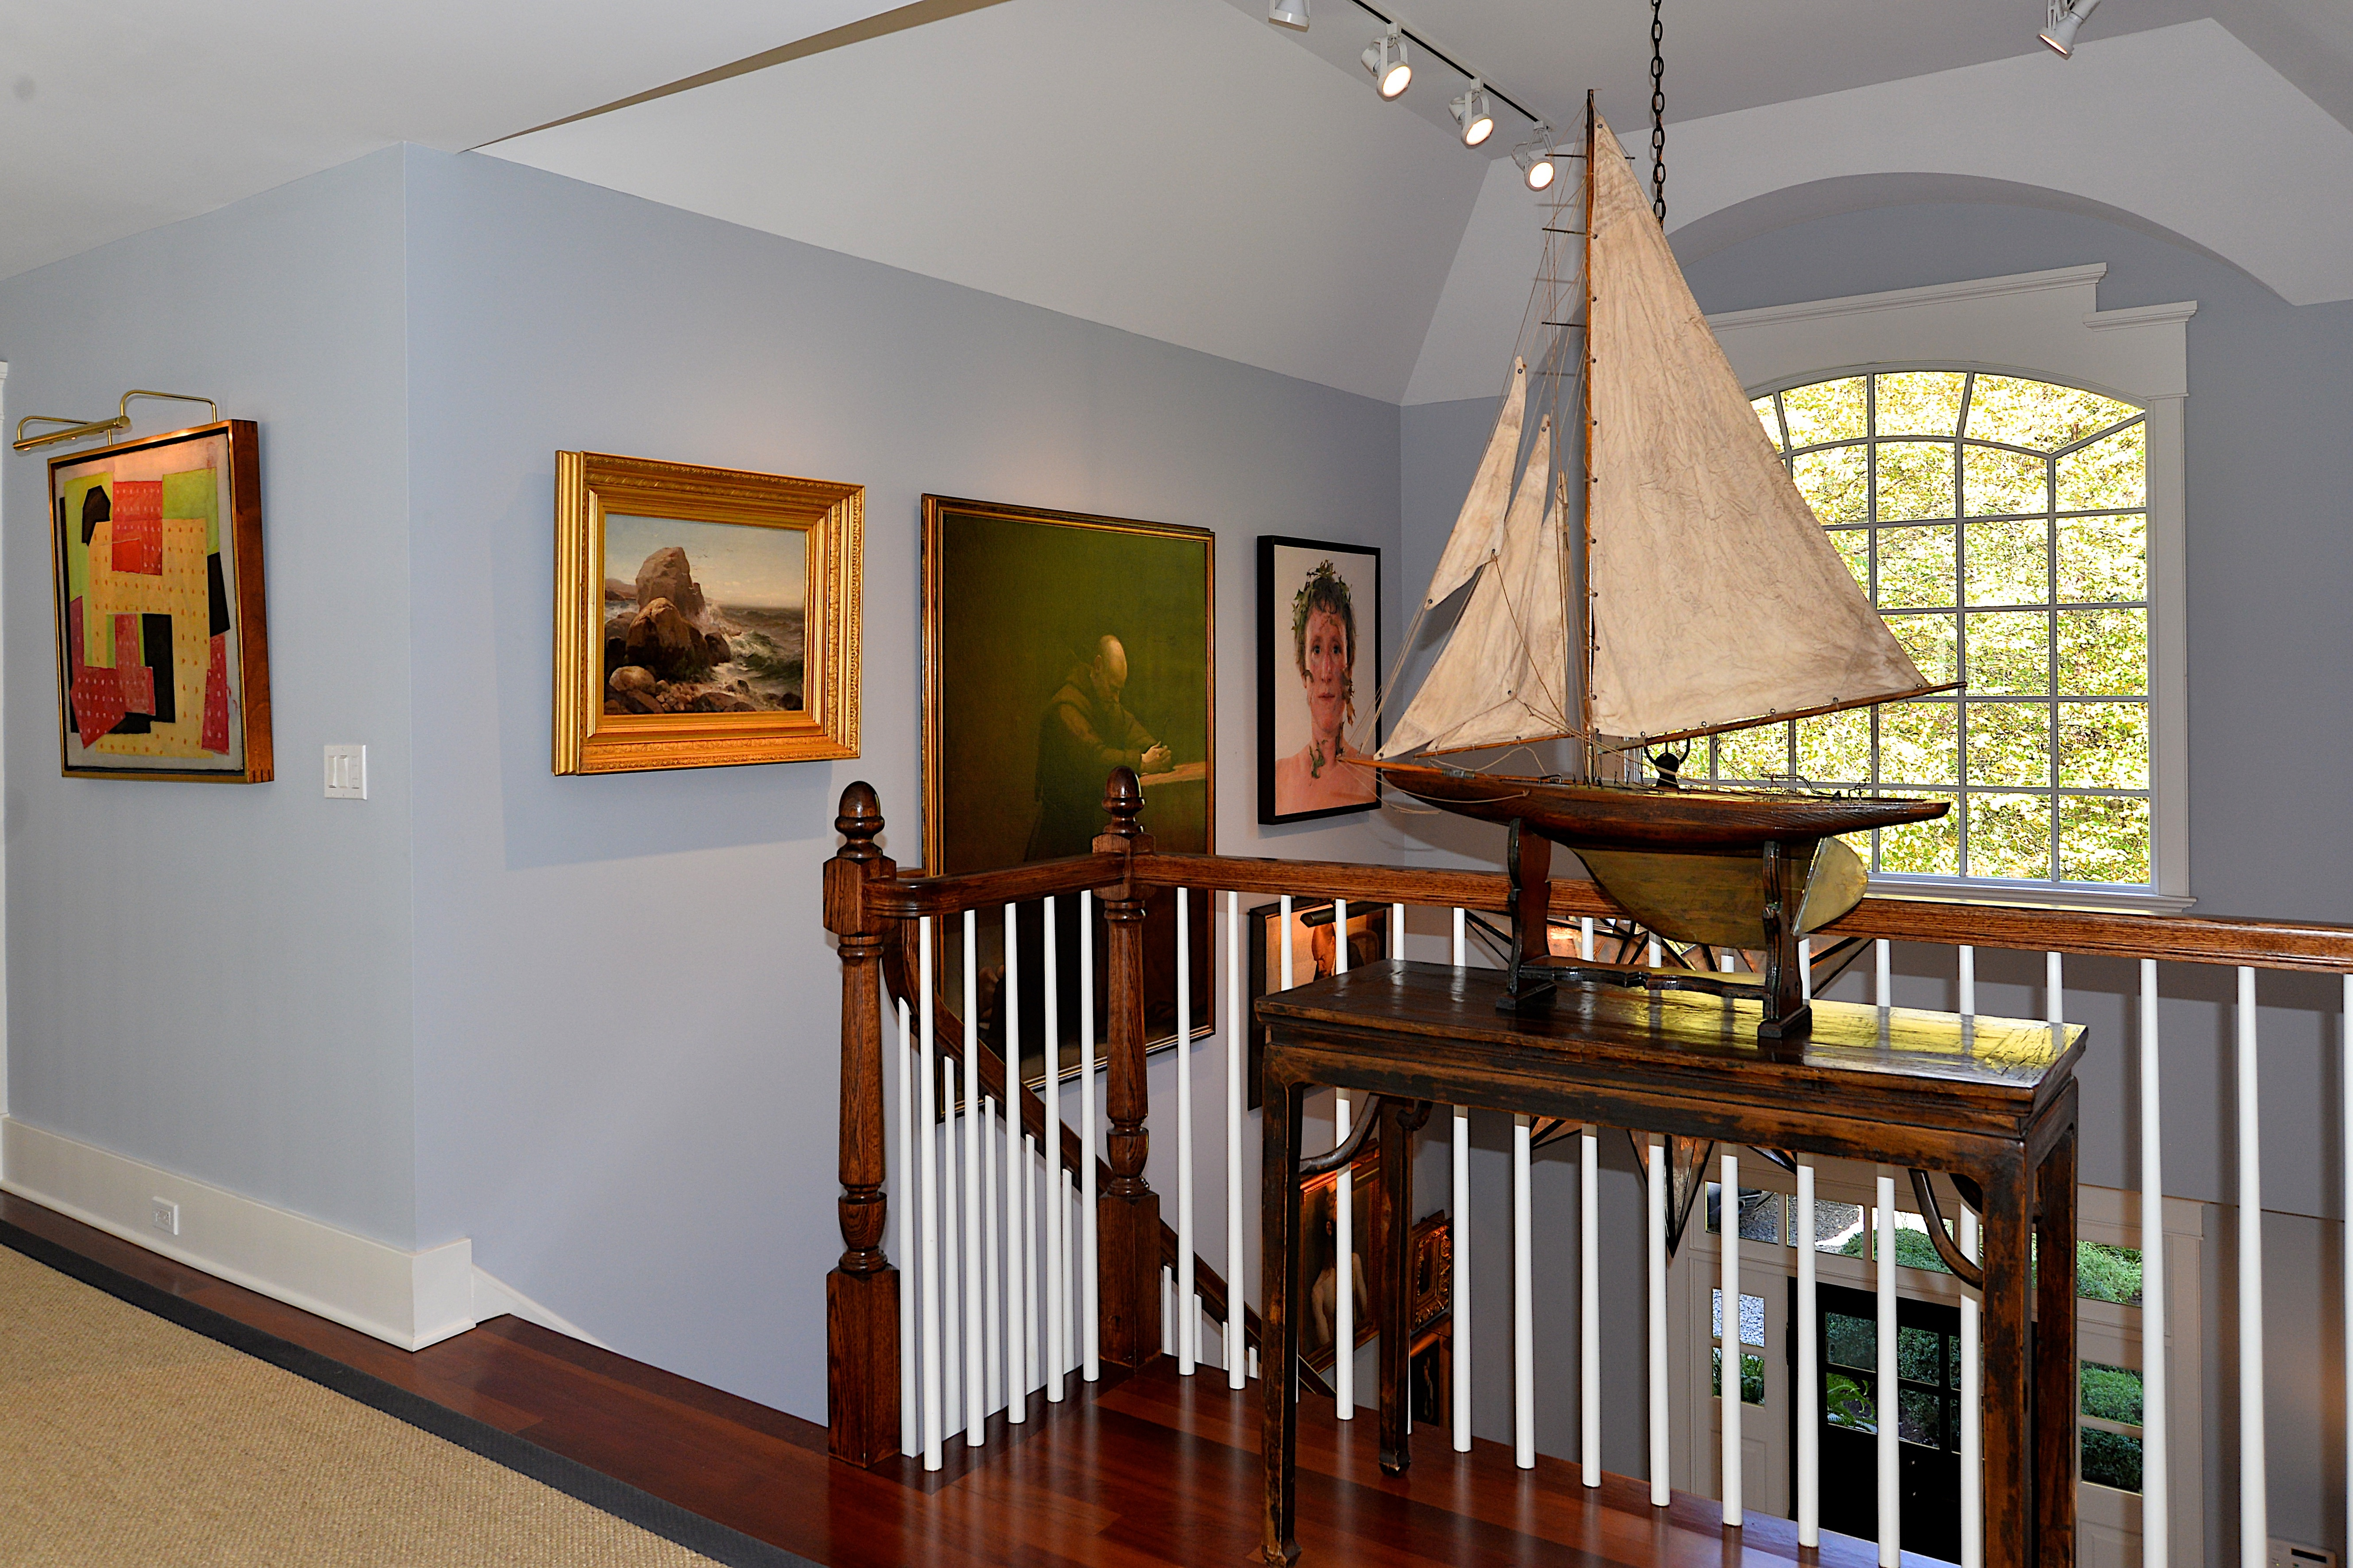 A model ship is among the antiques that adorn the home.